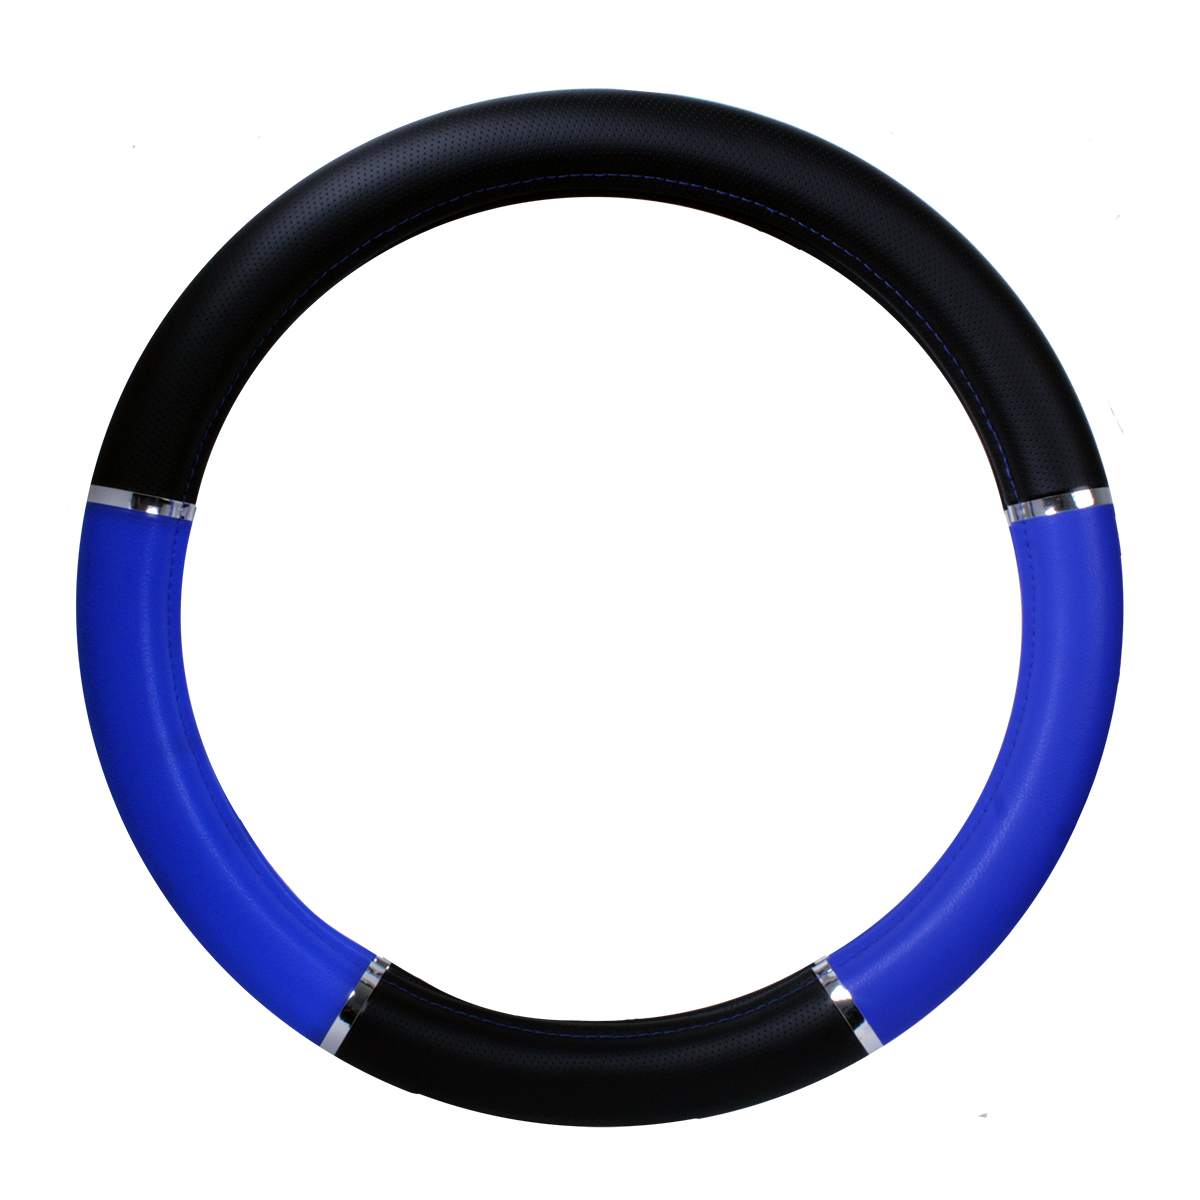 Steering Wheel Cover - Heavy Duty with Chrome Trim, Black and Blue, 18""